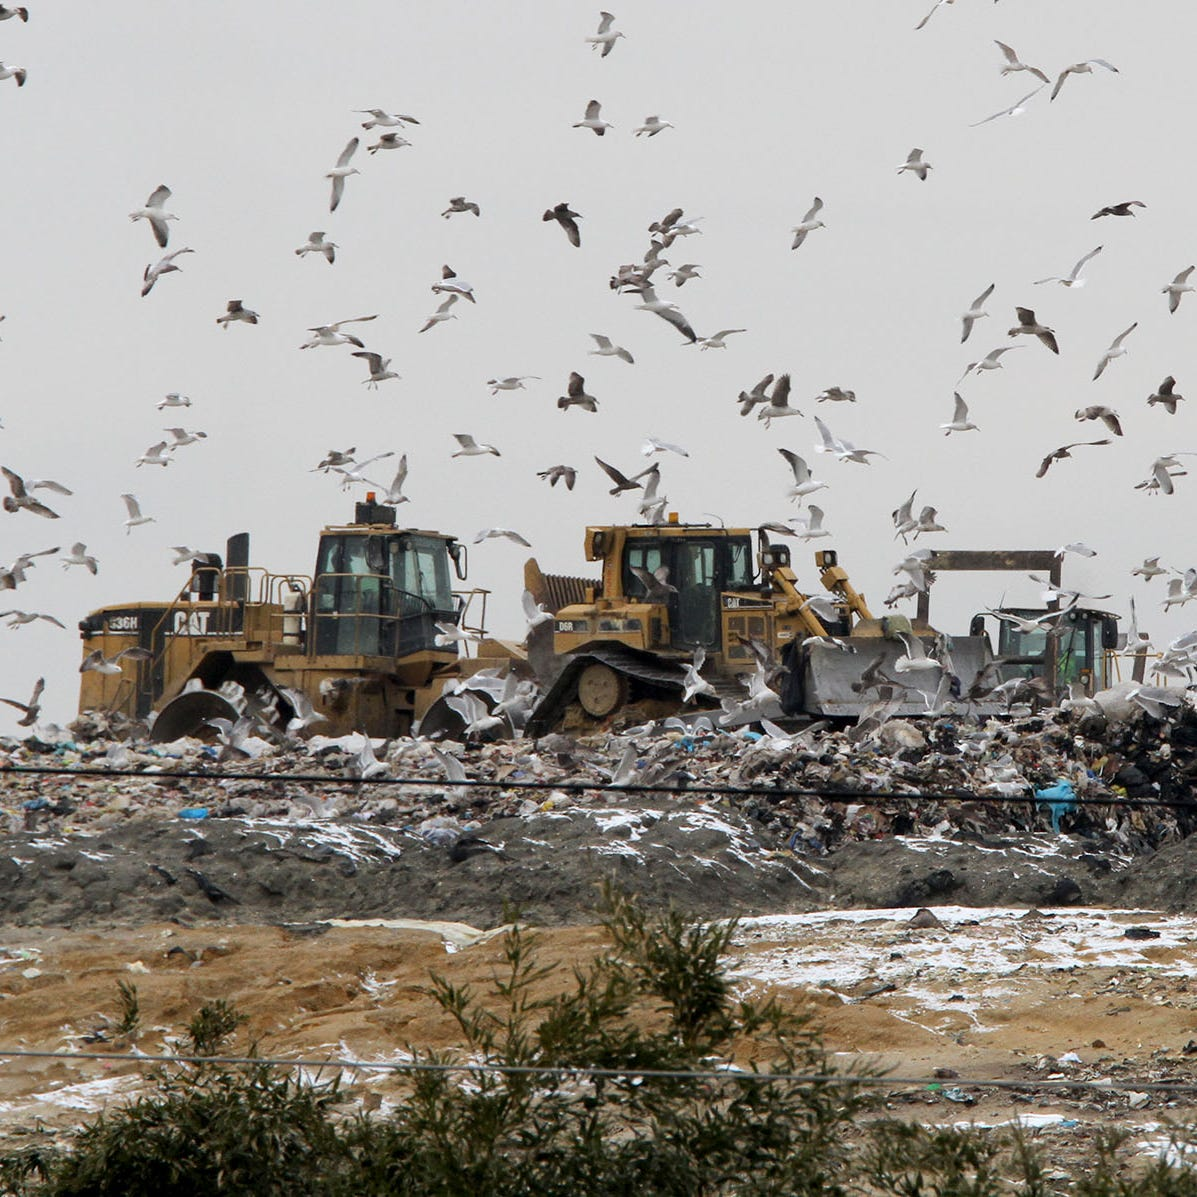 Monmouth County plans $7.5M to fix stinky landfill